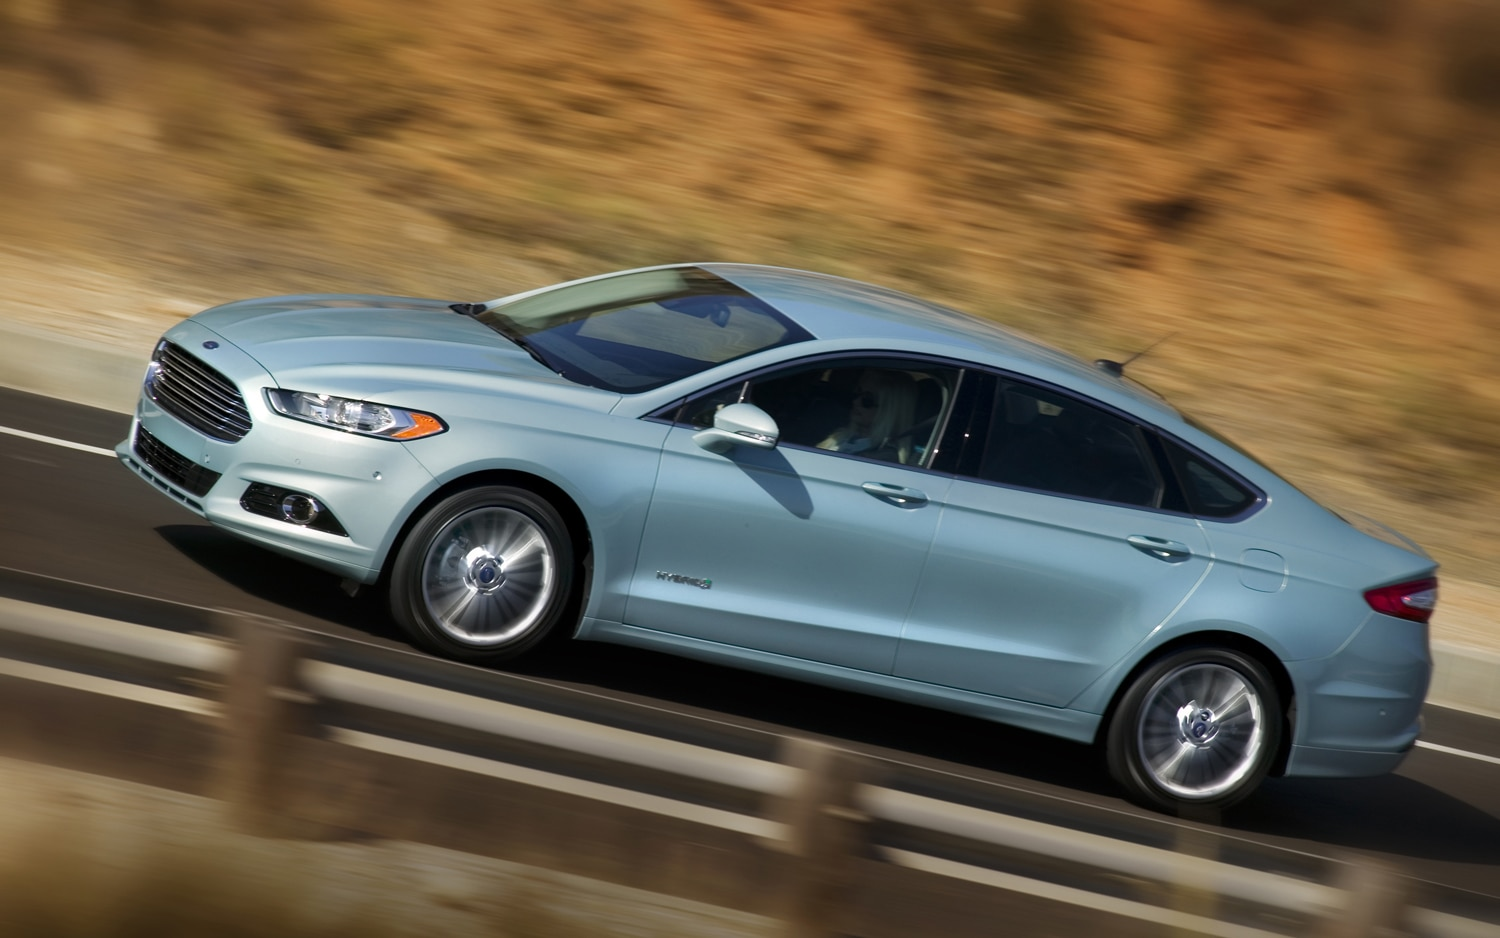 2013 Ford Fusion Hybrid Profile In Motion